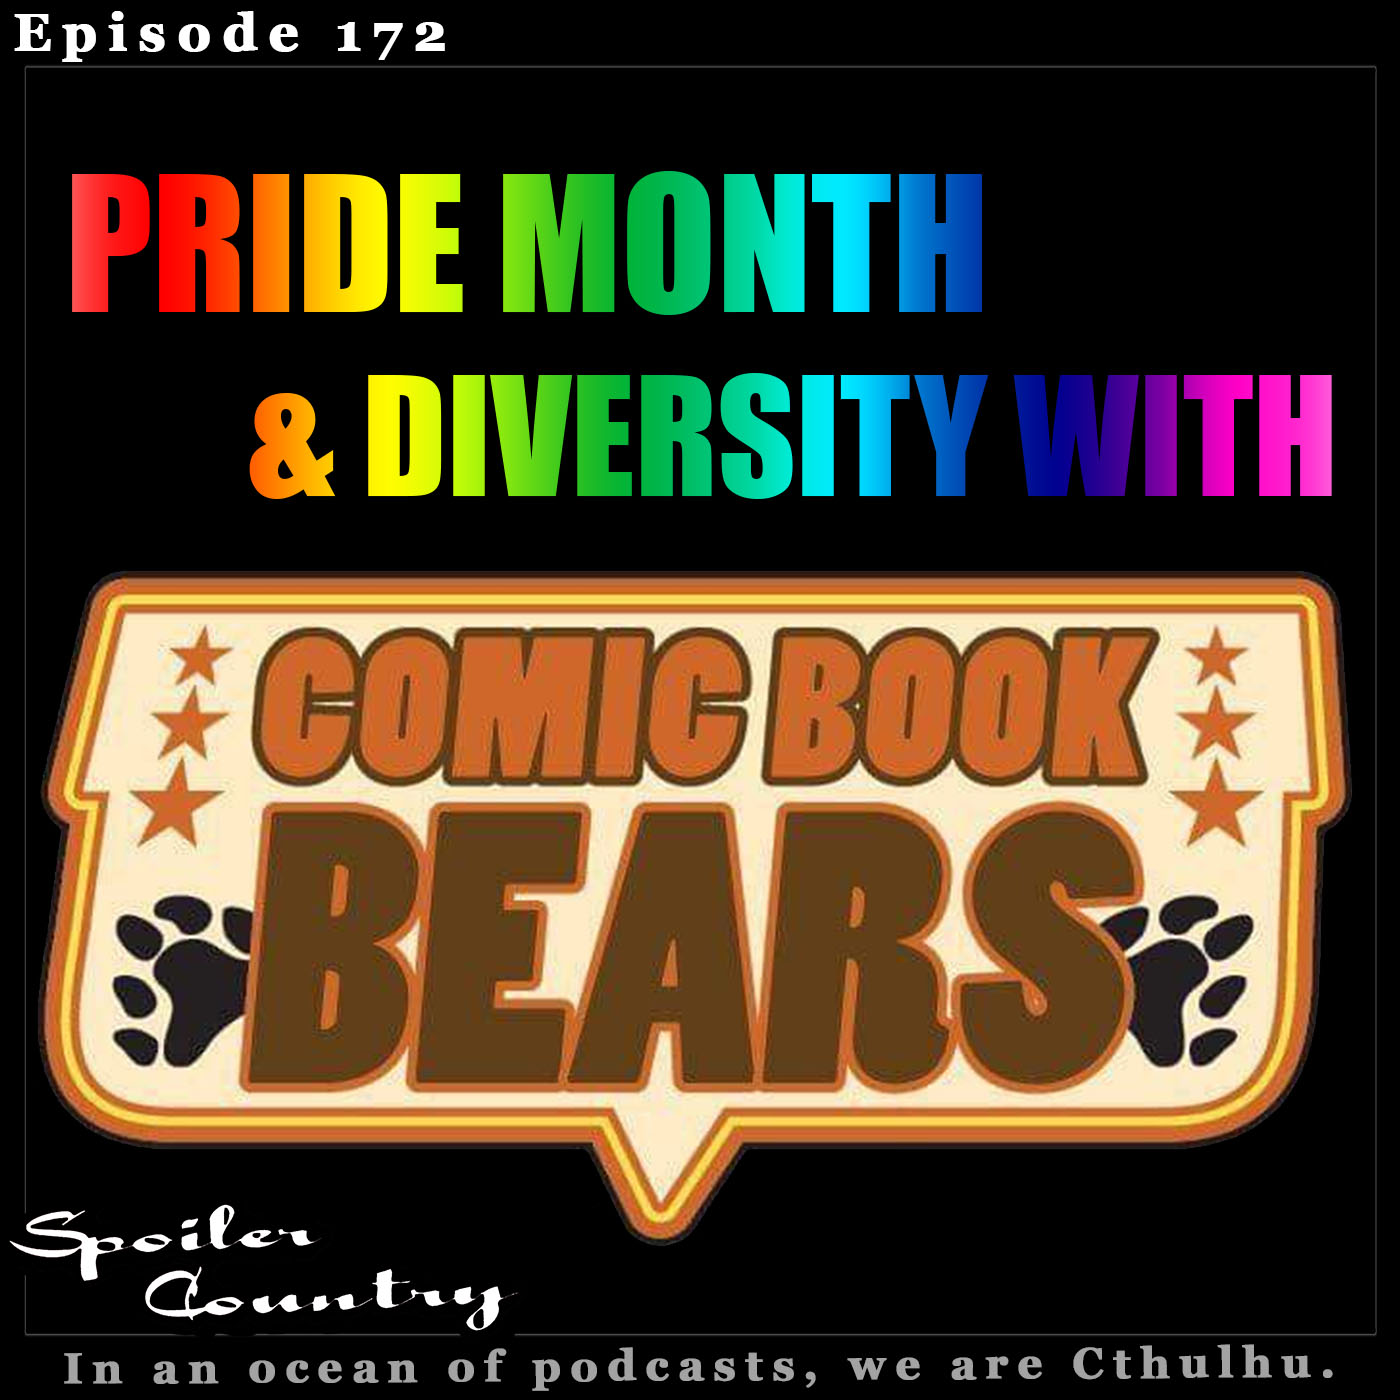 Pride Month with the Comic Book Bears!